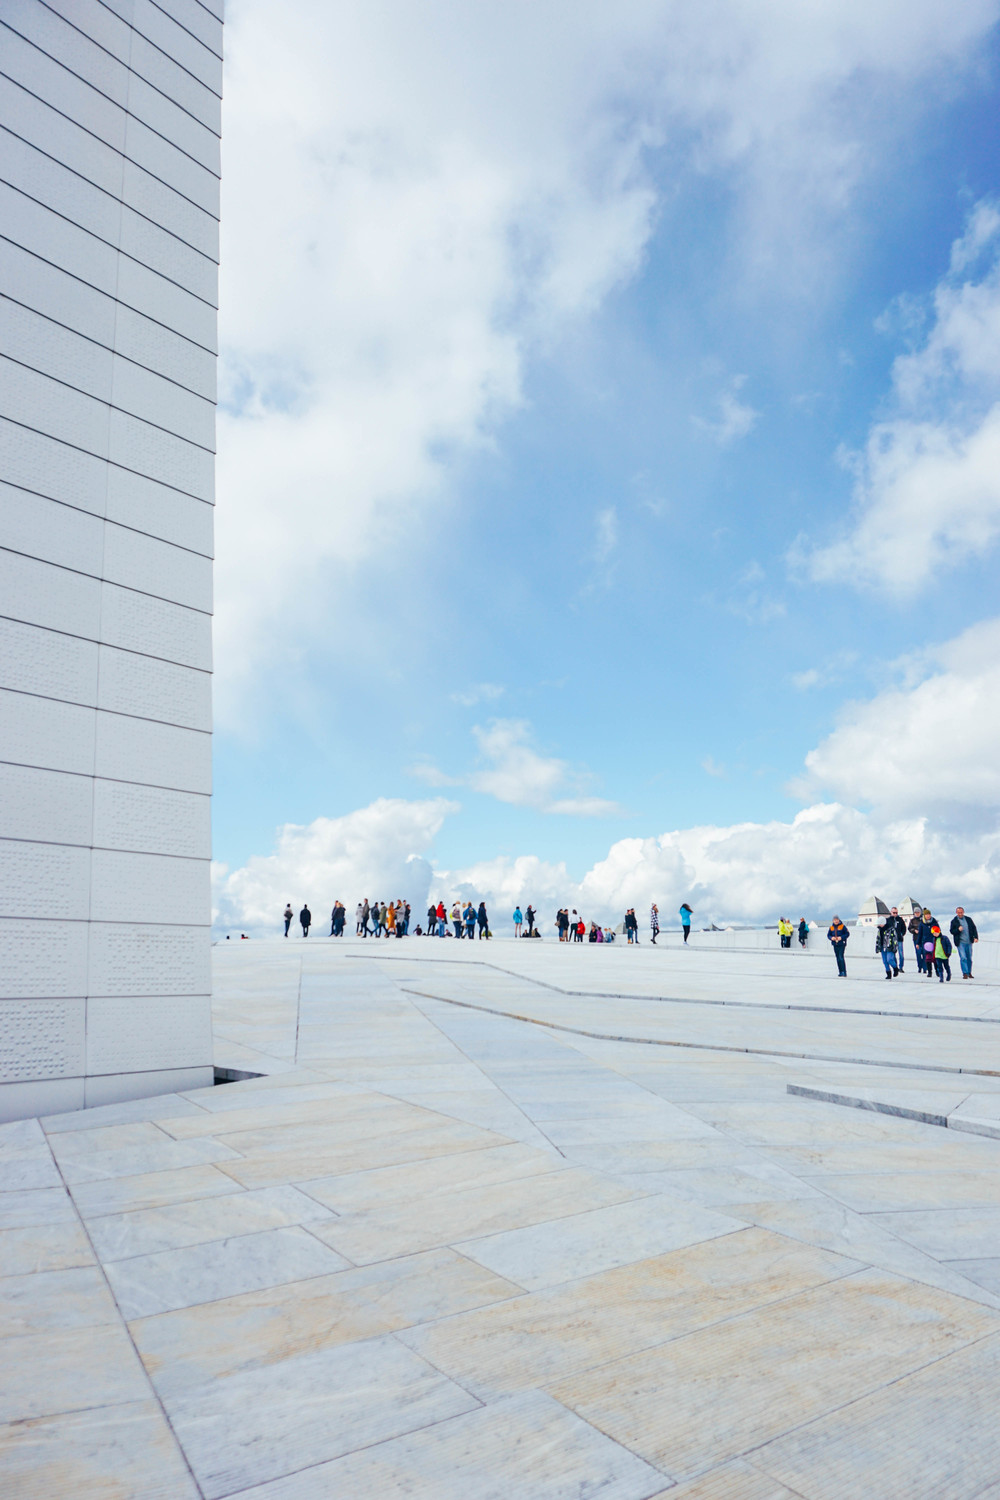 Travel to Norway and visit the Oslo Opera House